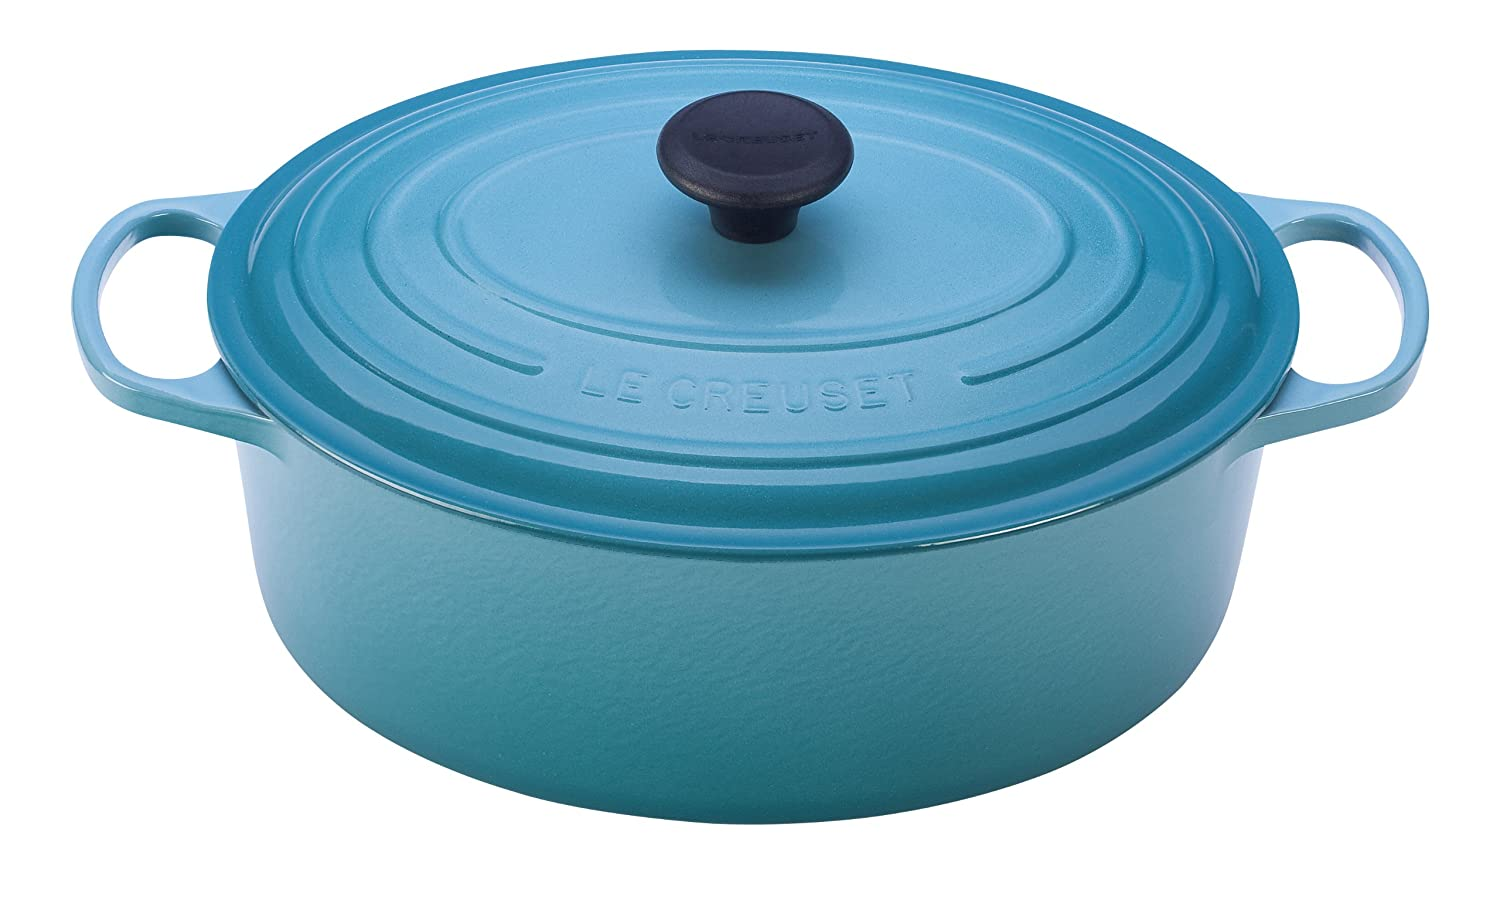 Le Creuset Signature Enameled Cast-Iron 6.75 Quart Oval French (Dutch) Oven, Caribbean